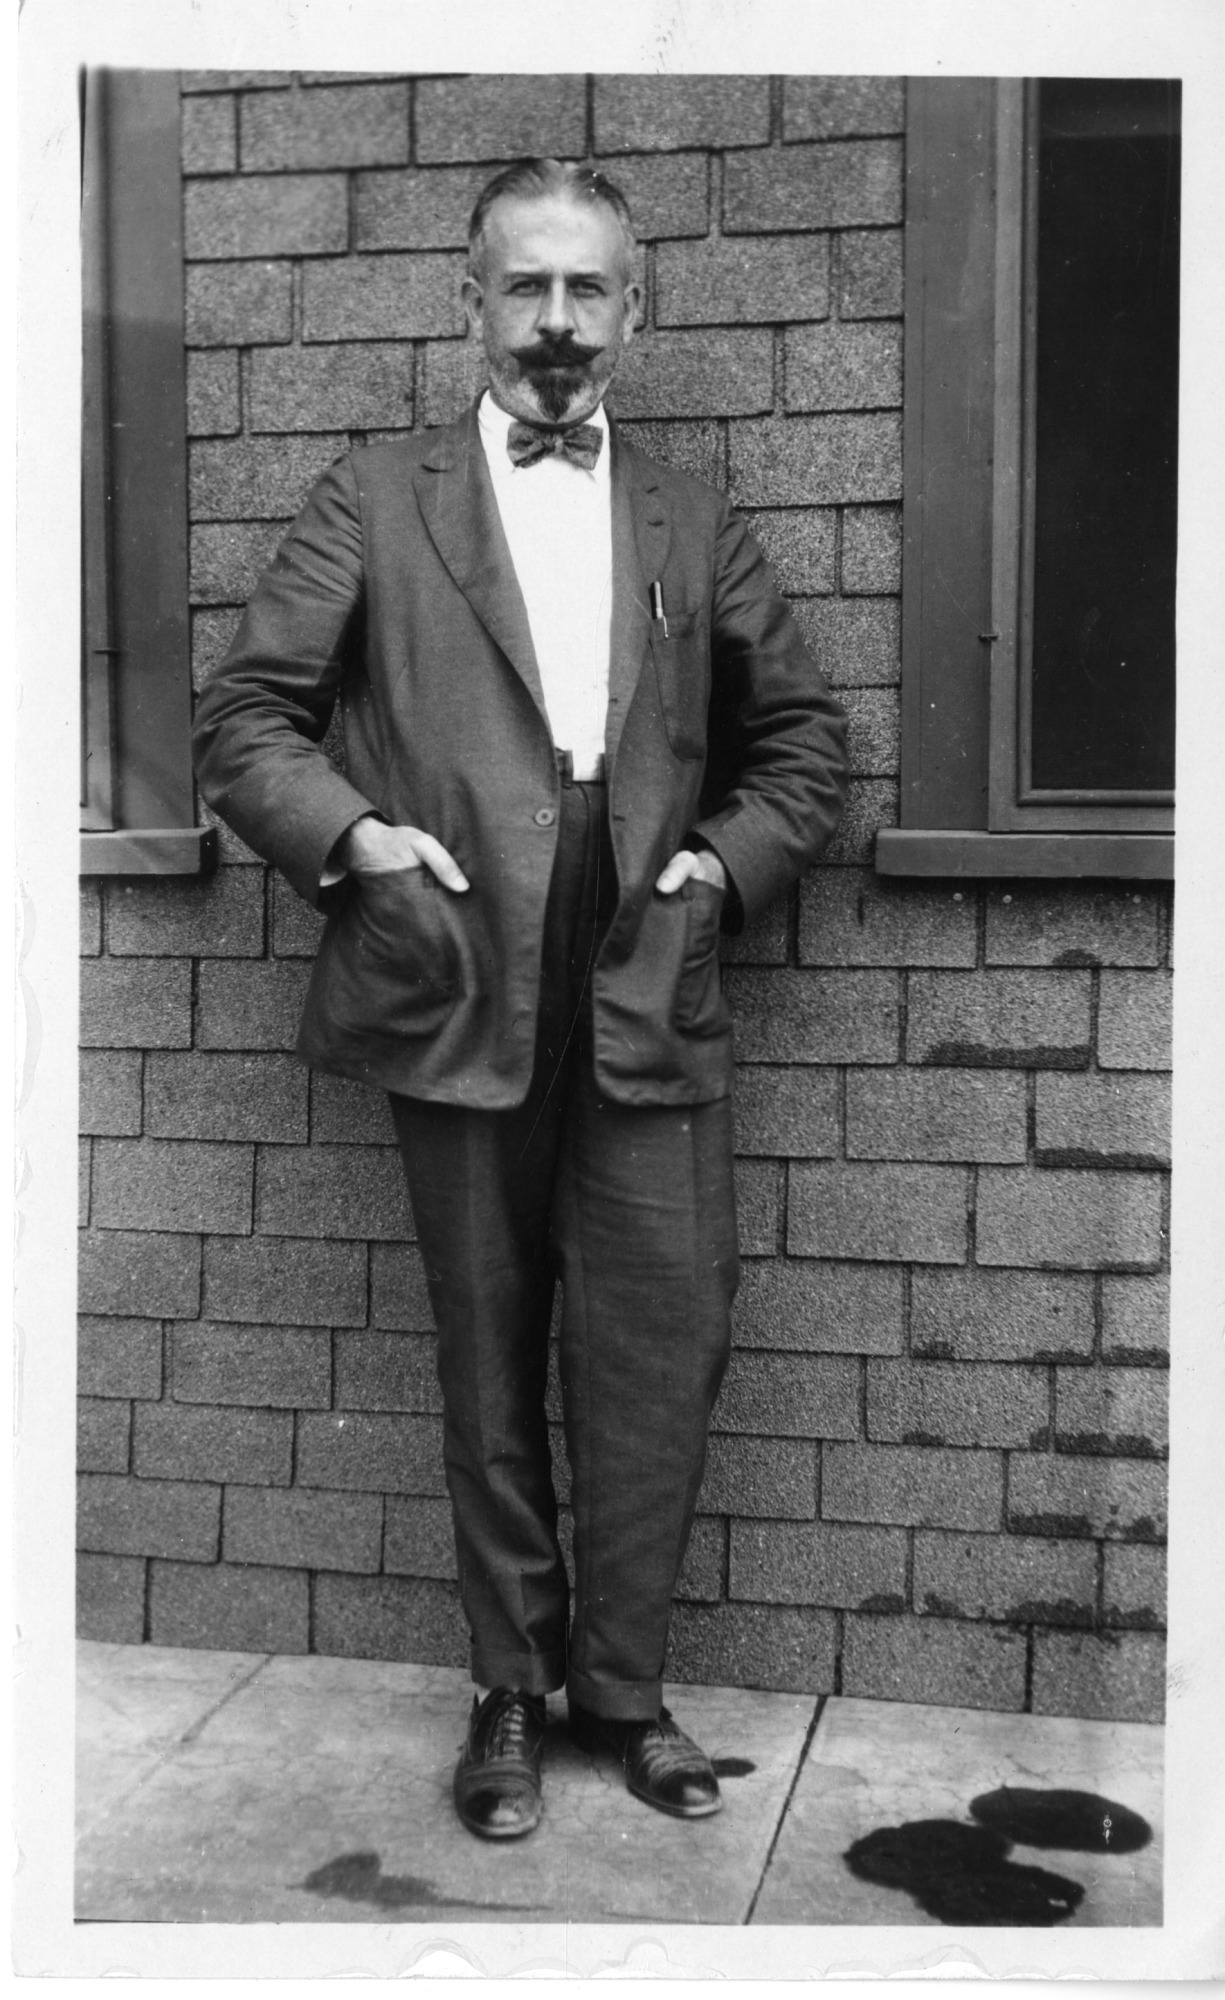 Harrison Estell Howe (1881-1943), Smithsonian Institution Archives, SIA Acc. 90-105 [SIA2008-3957].